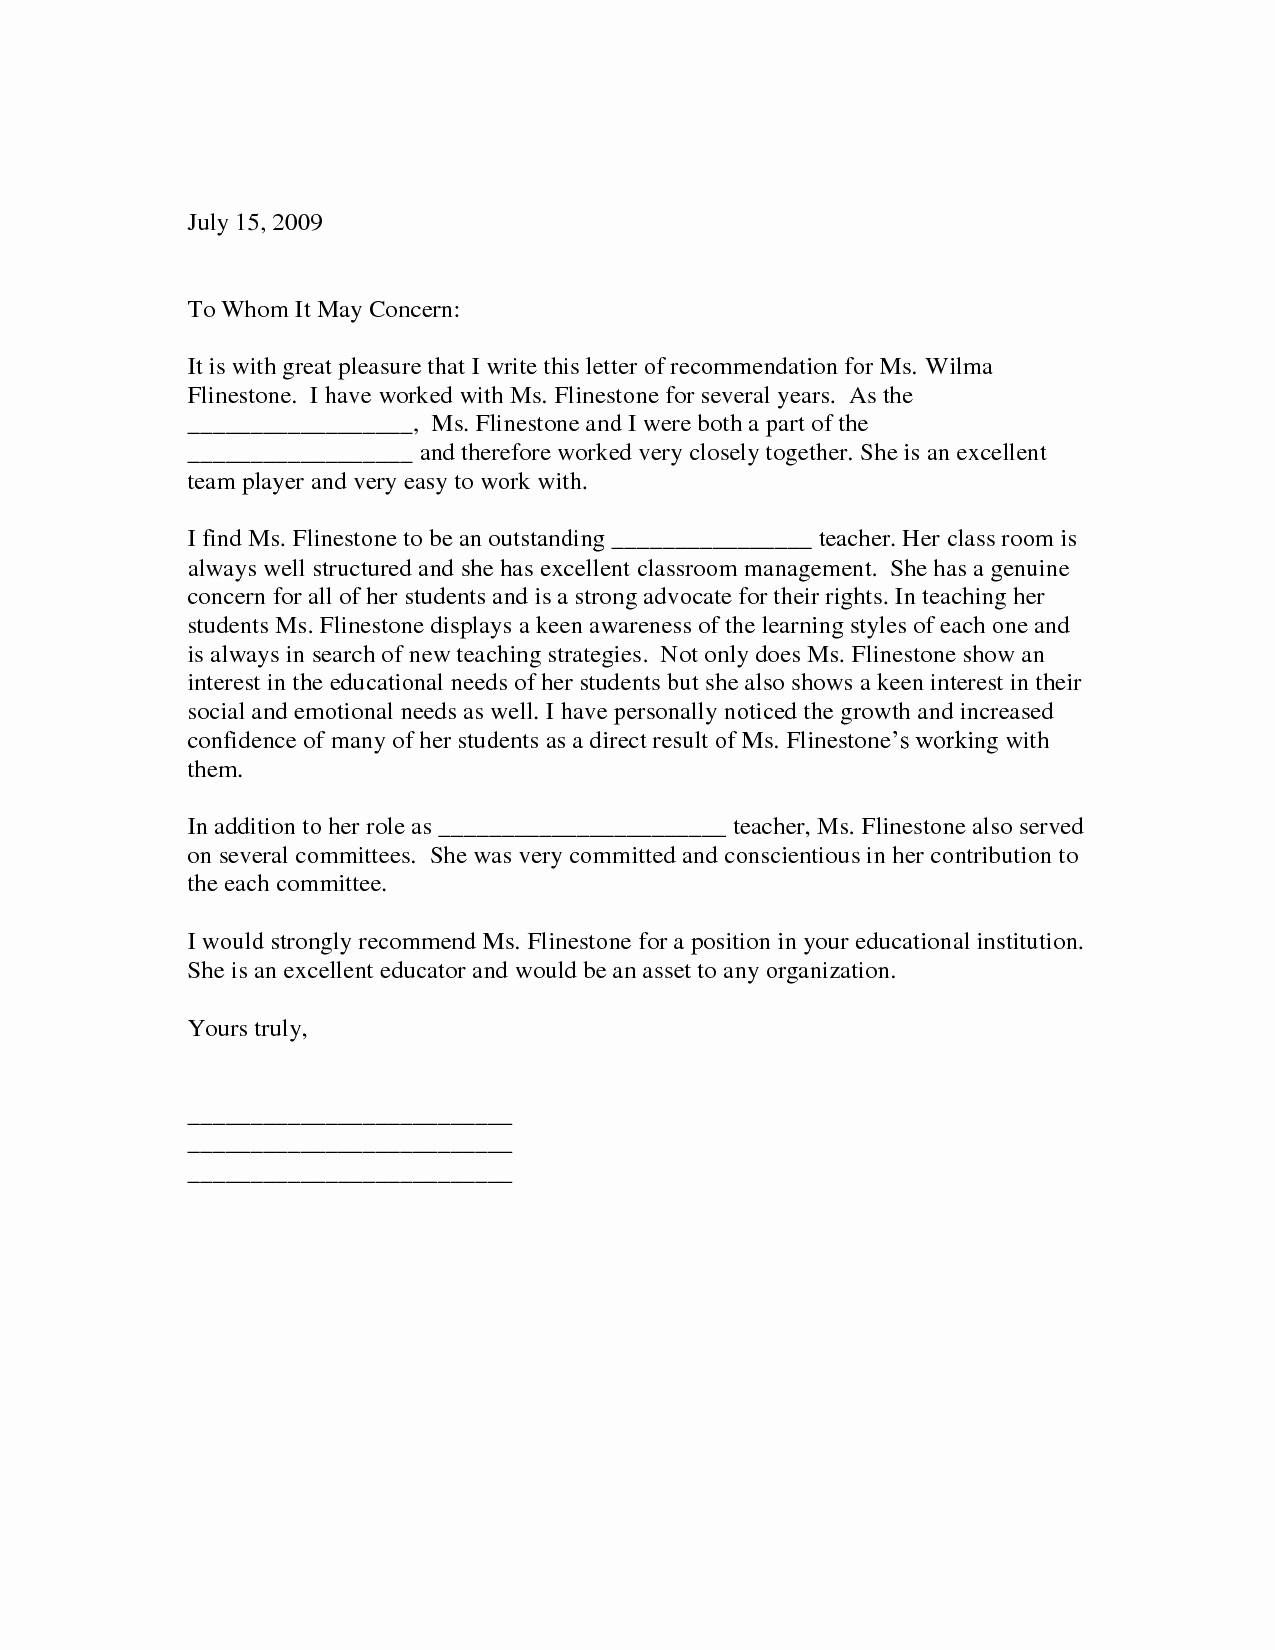 Student Teacher Recommendation Letter New Sample Letter Of Re Mendation for Teacher